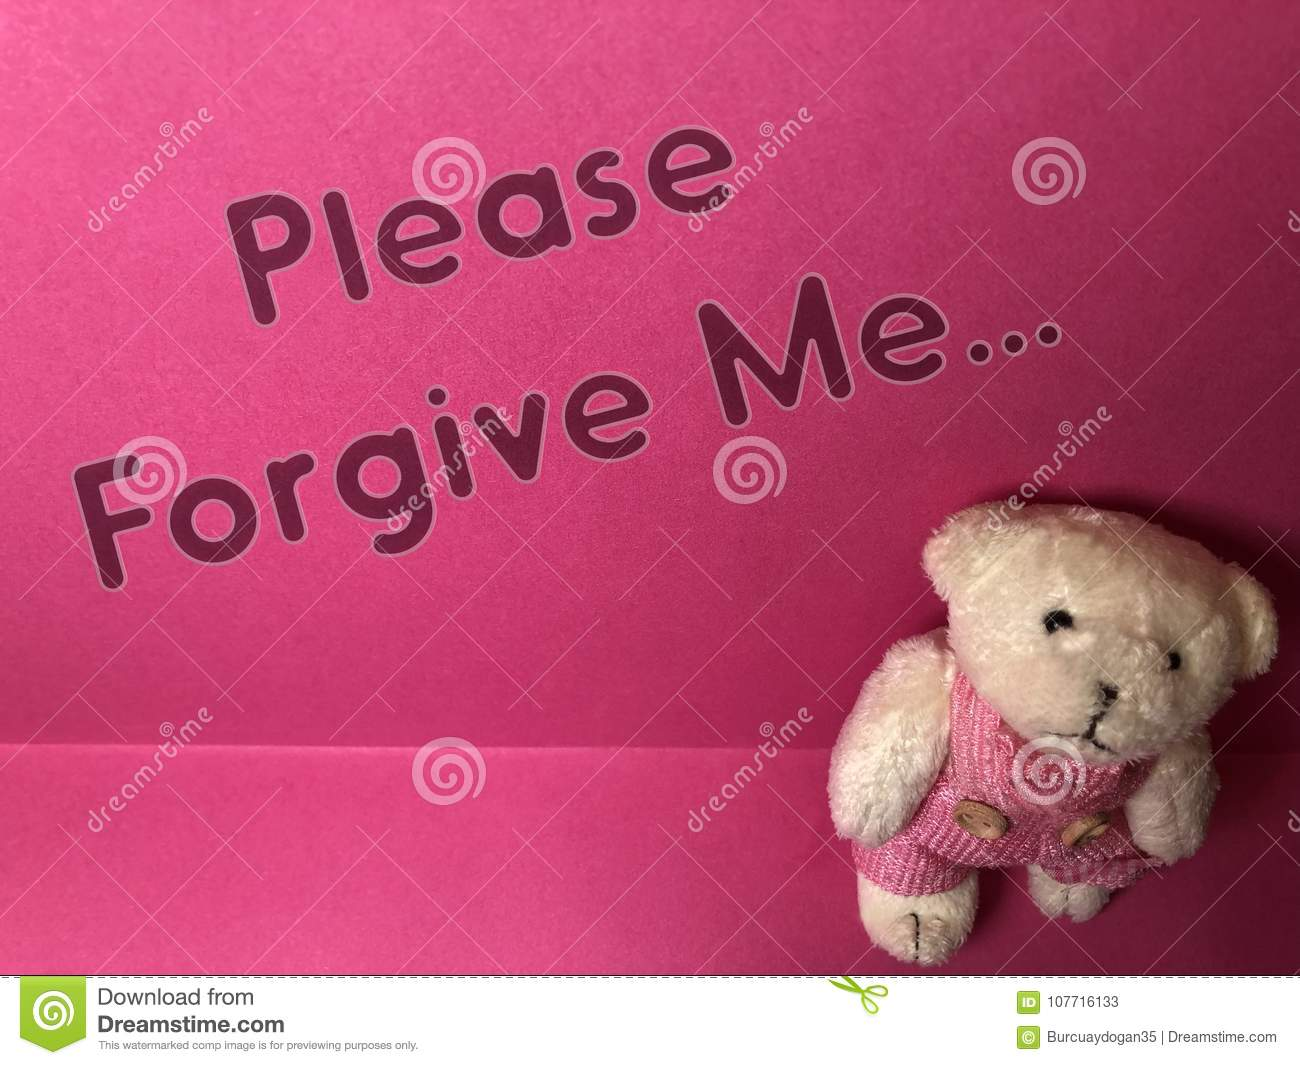 please forgive me picture messages enam wallpaper